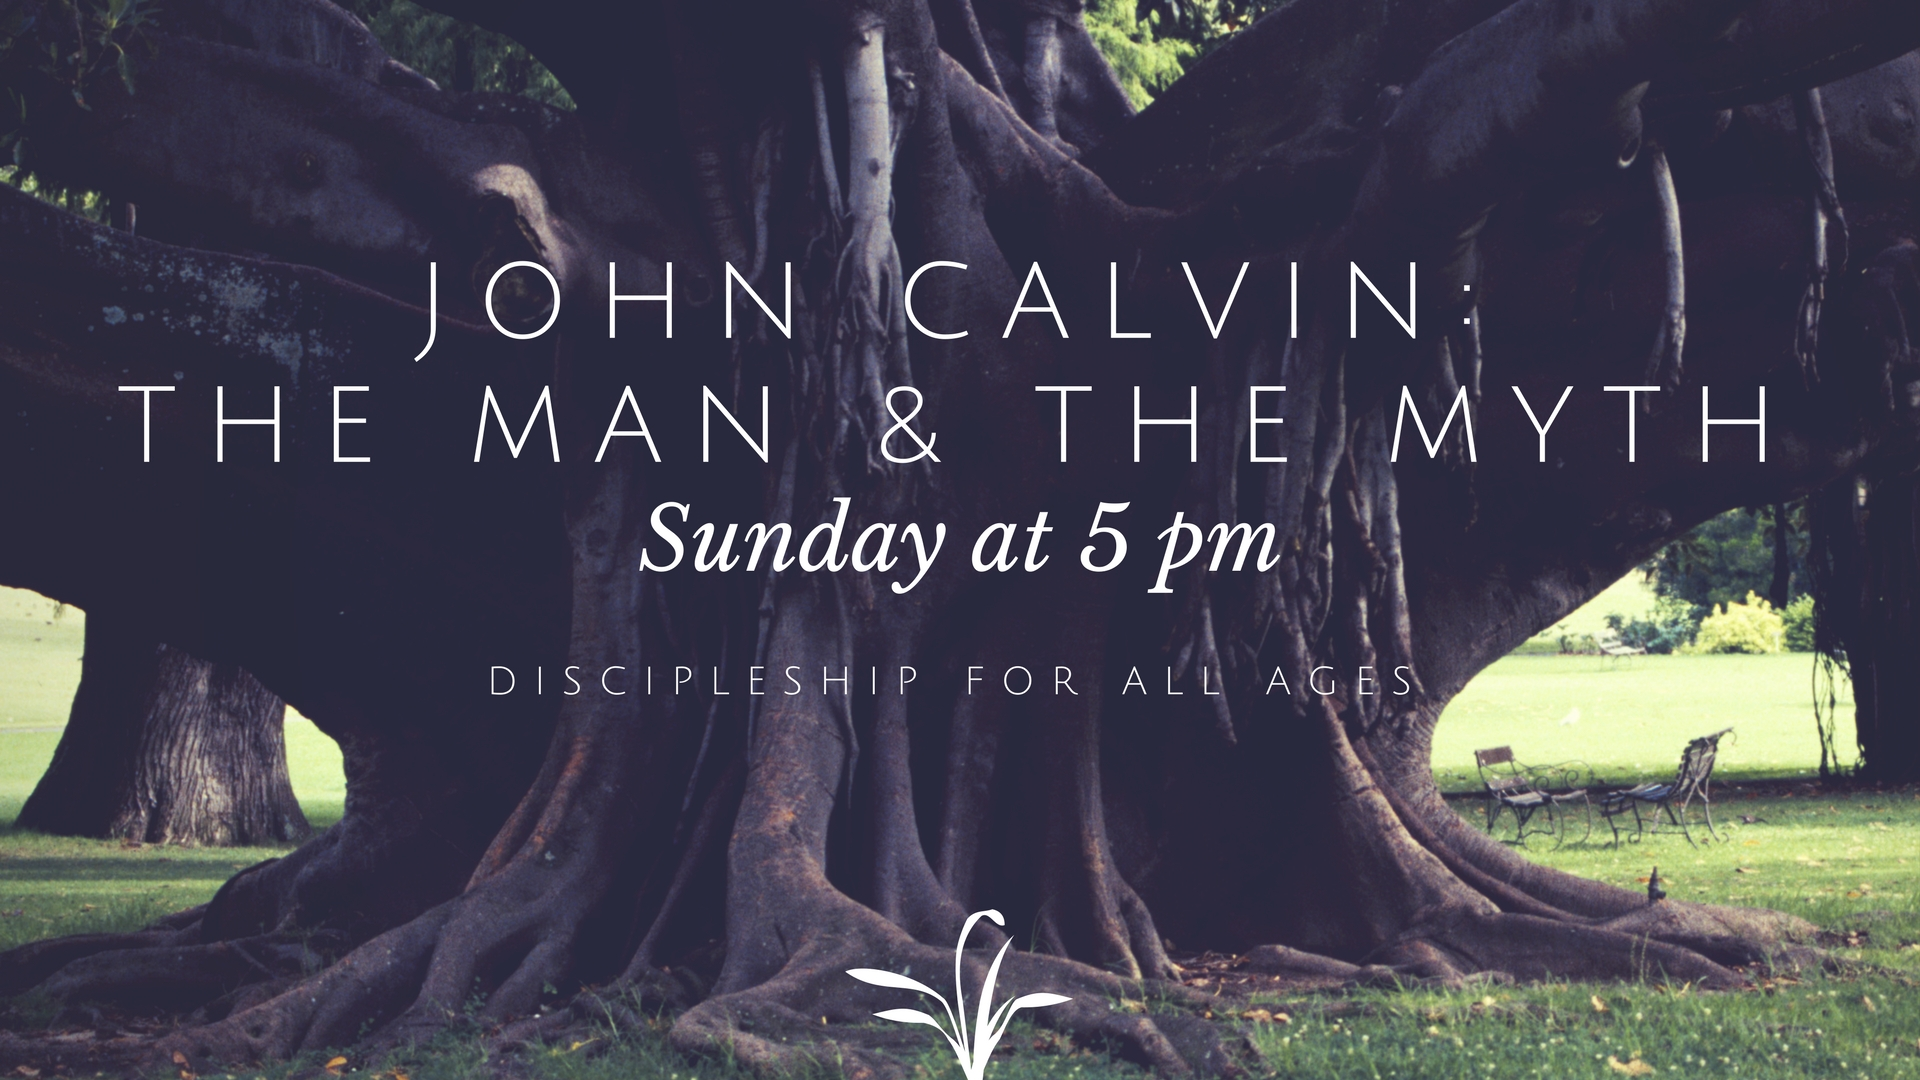 John Calvin: The Man and The Myth